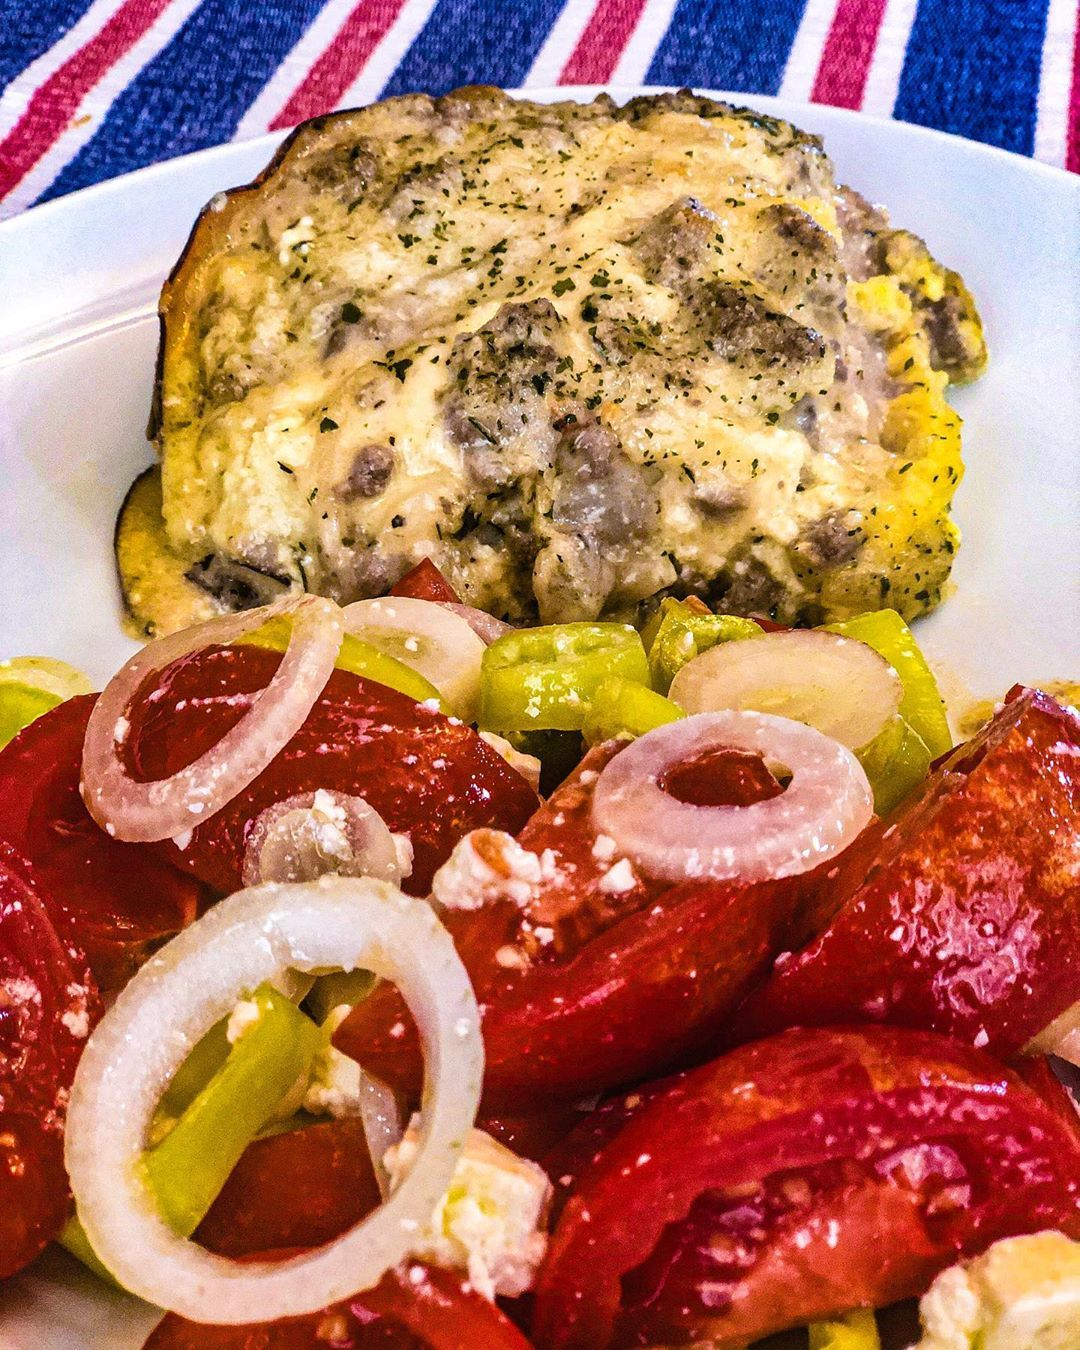 Made a white protein lasagna for lunch today....straying away from my usual red sauce lasagna. Served it with a tomato salad...recipe in my stories